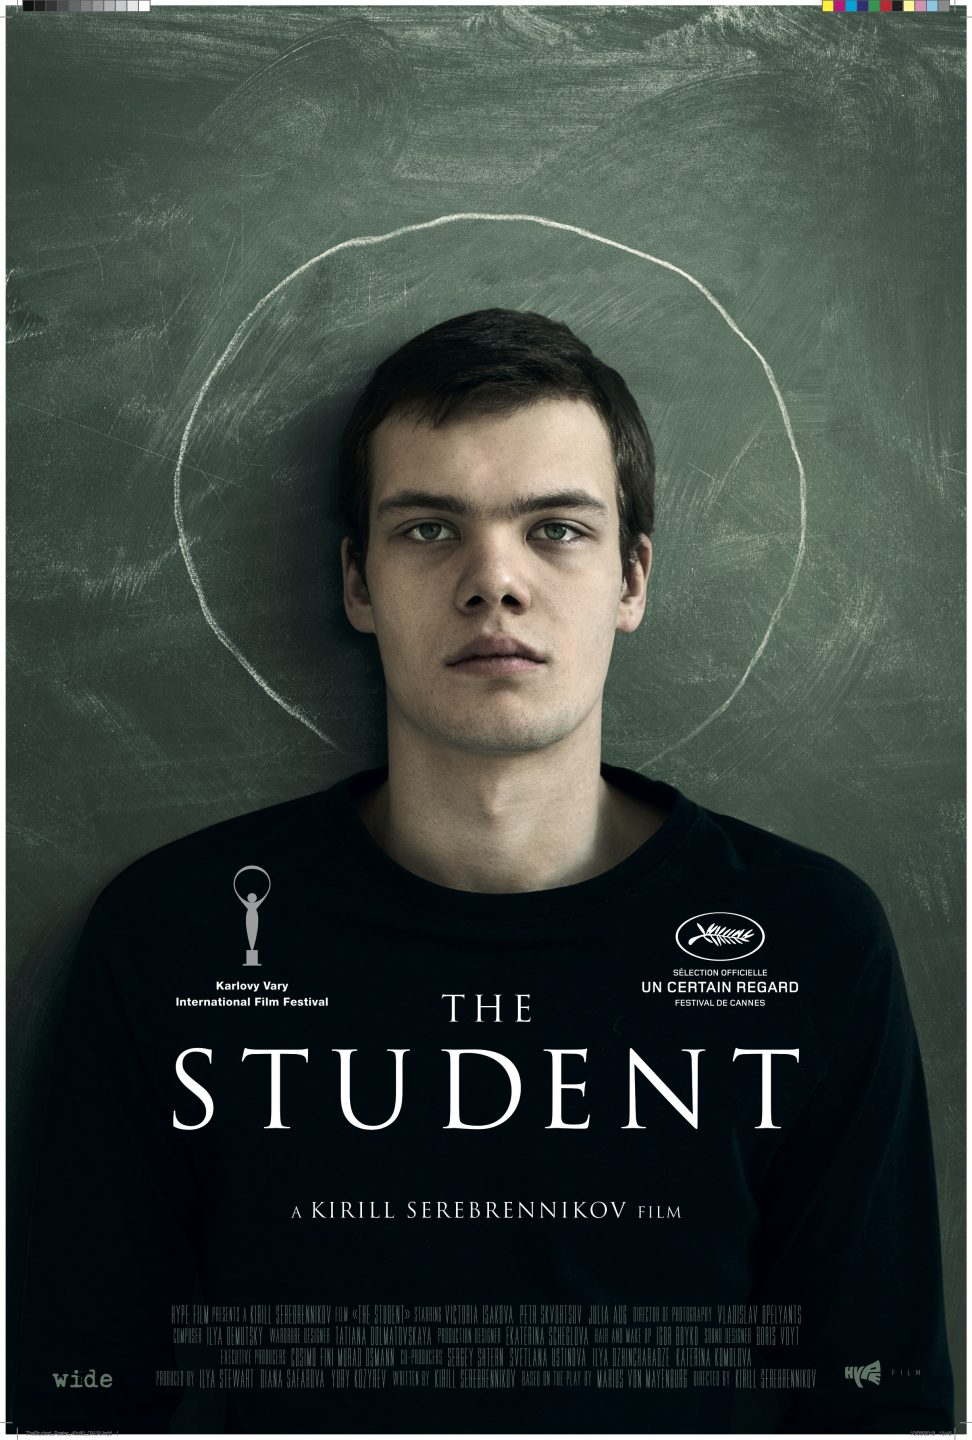 TheStudent_Poster_40x60_CMJN_PRINT